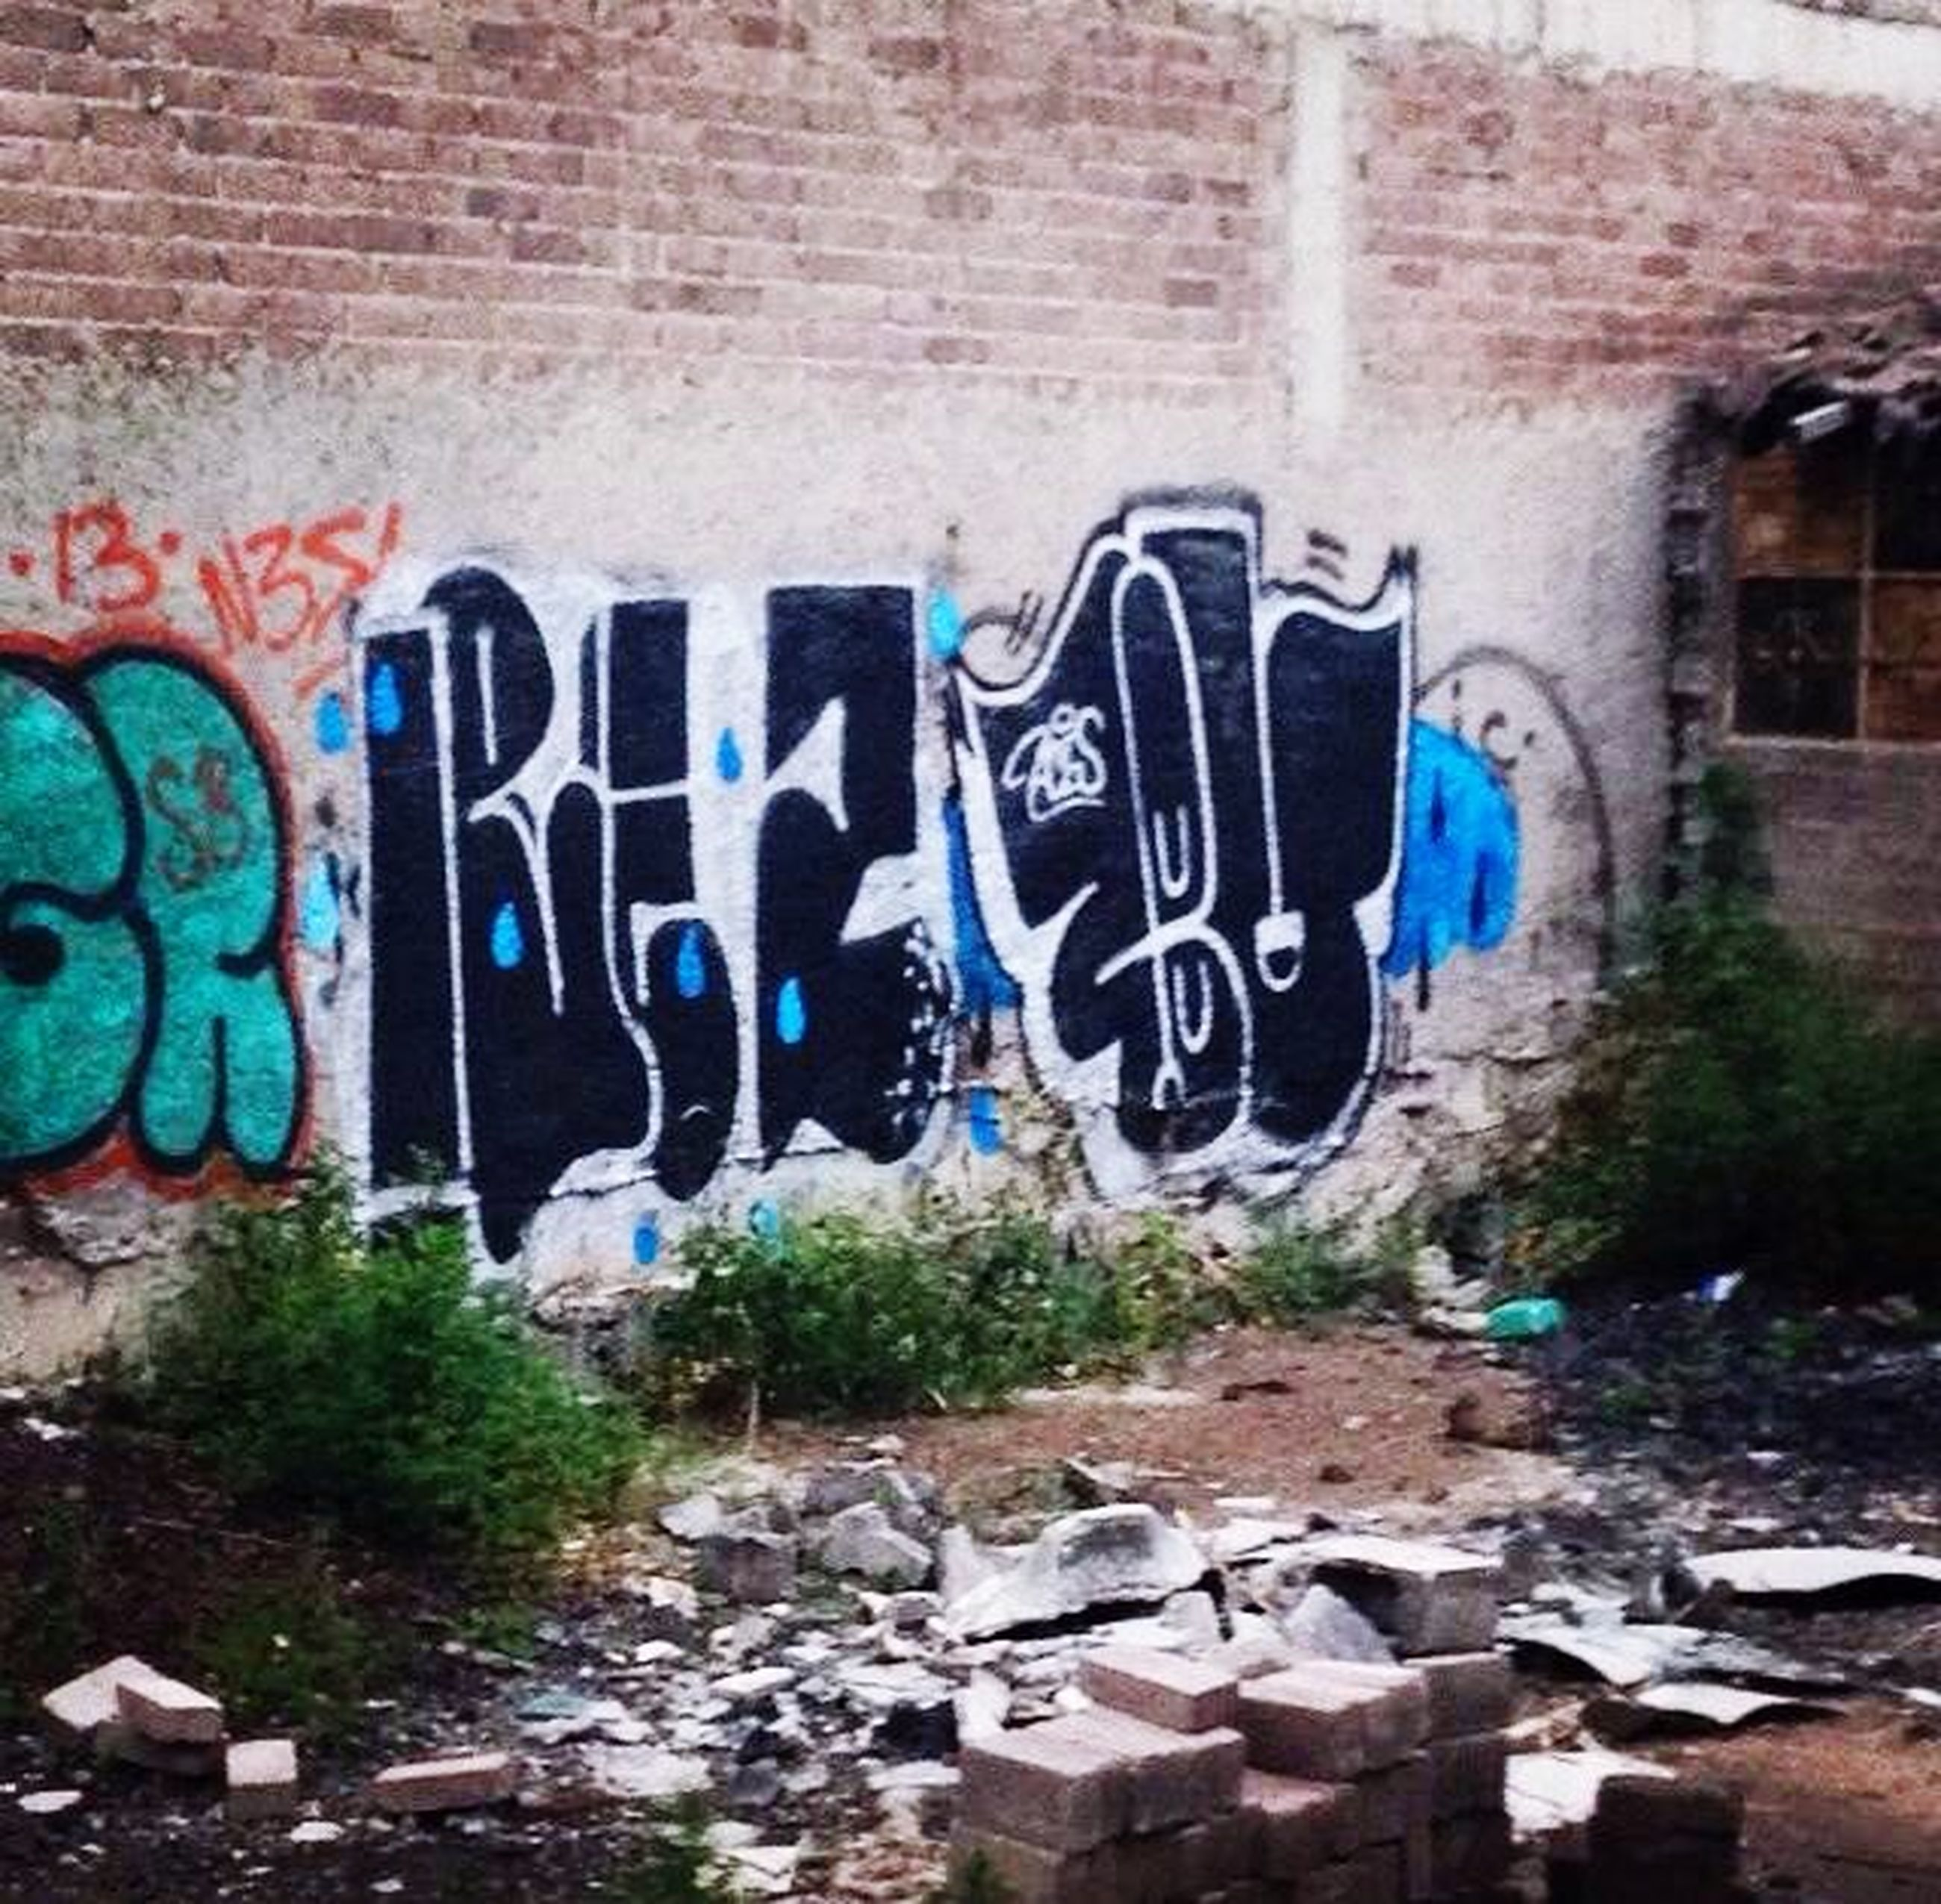 graffiti, art, art and craft, creativity, wall - building feature, built structure, architecture, text, western script, human representation, building exterior, street art, brick wall, wall, multi colored, day, vandalism, communication, weathered, outdoors